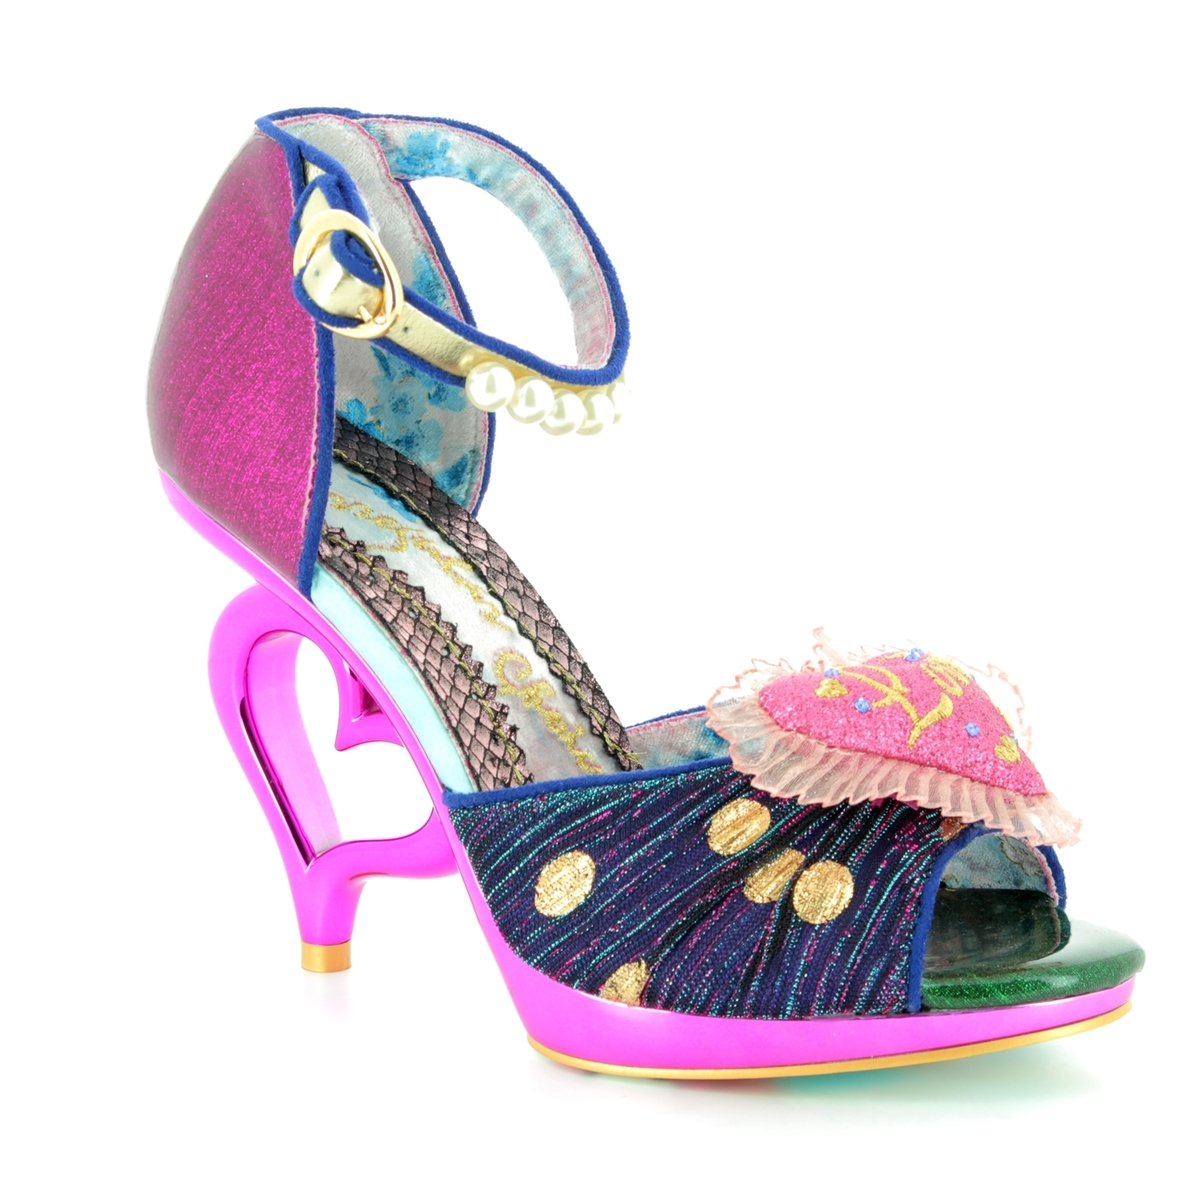 f85f83a53884 Irregular Choice High-heeled Shoes - Pink - 4425-02A SHOELY NOT